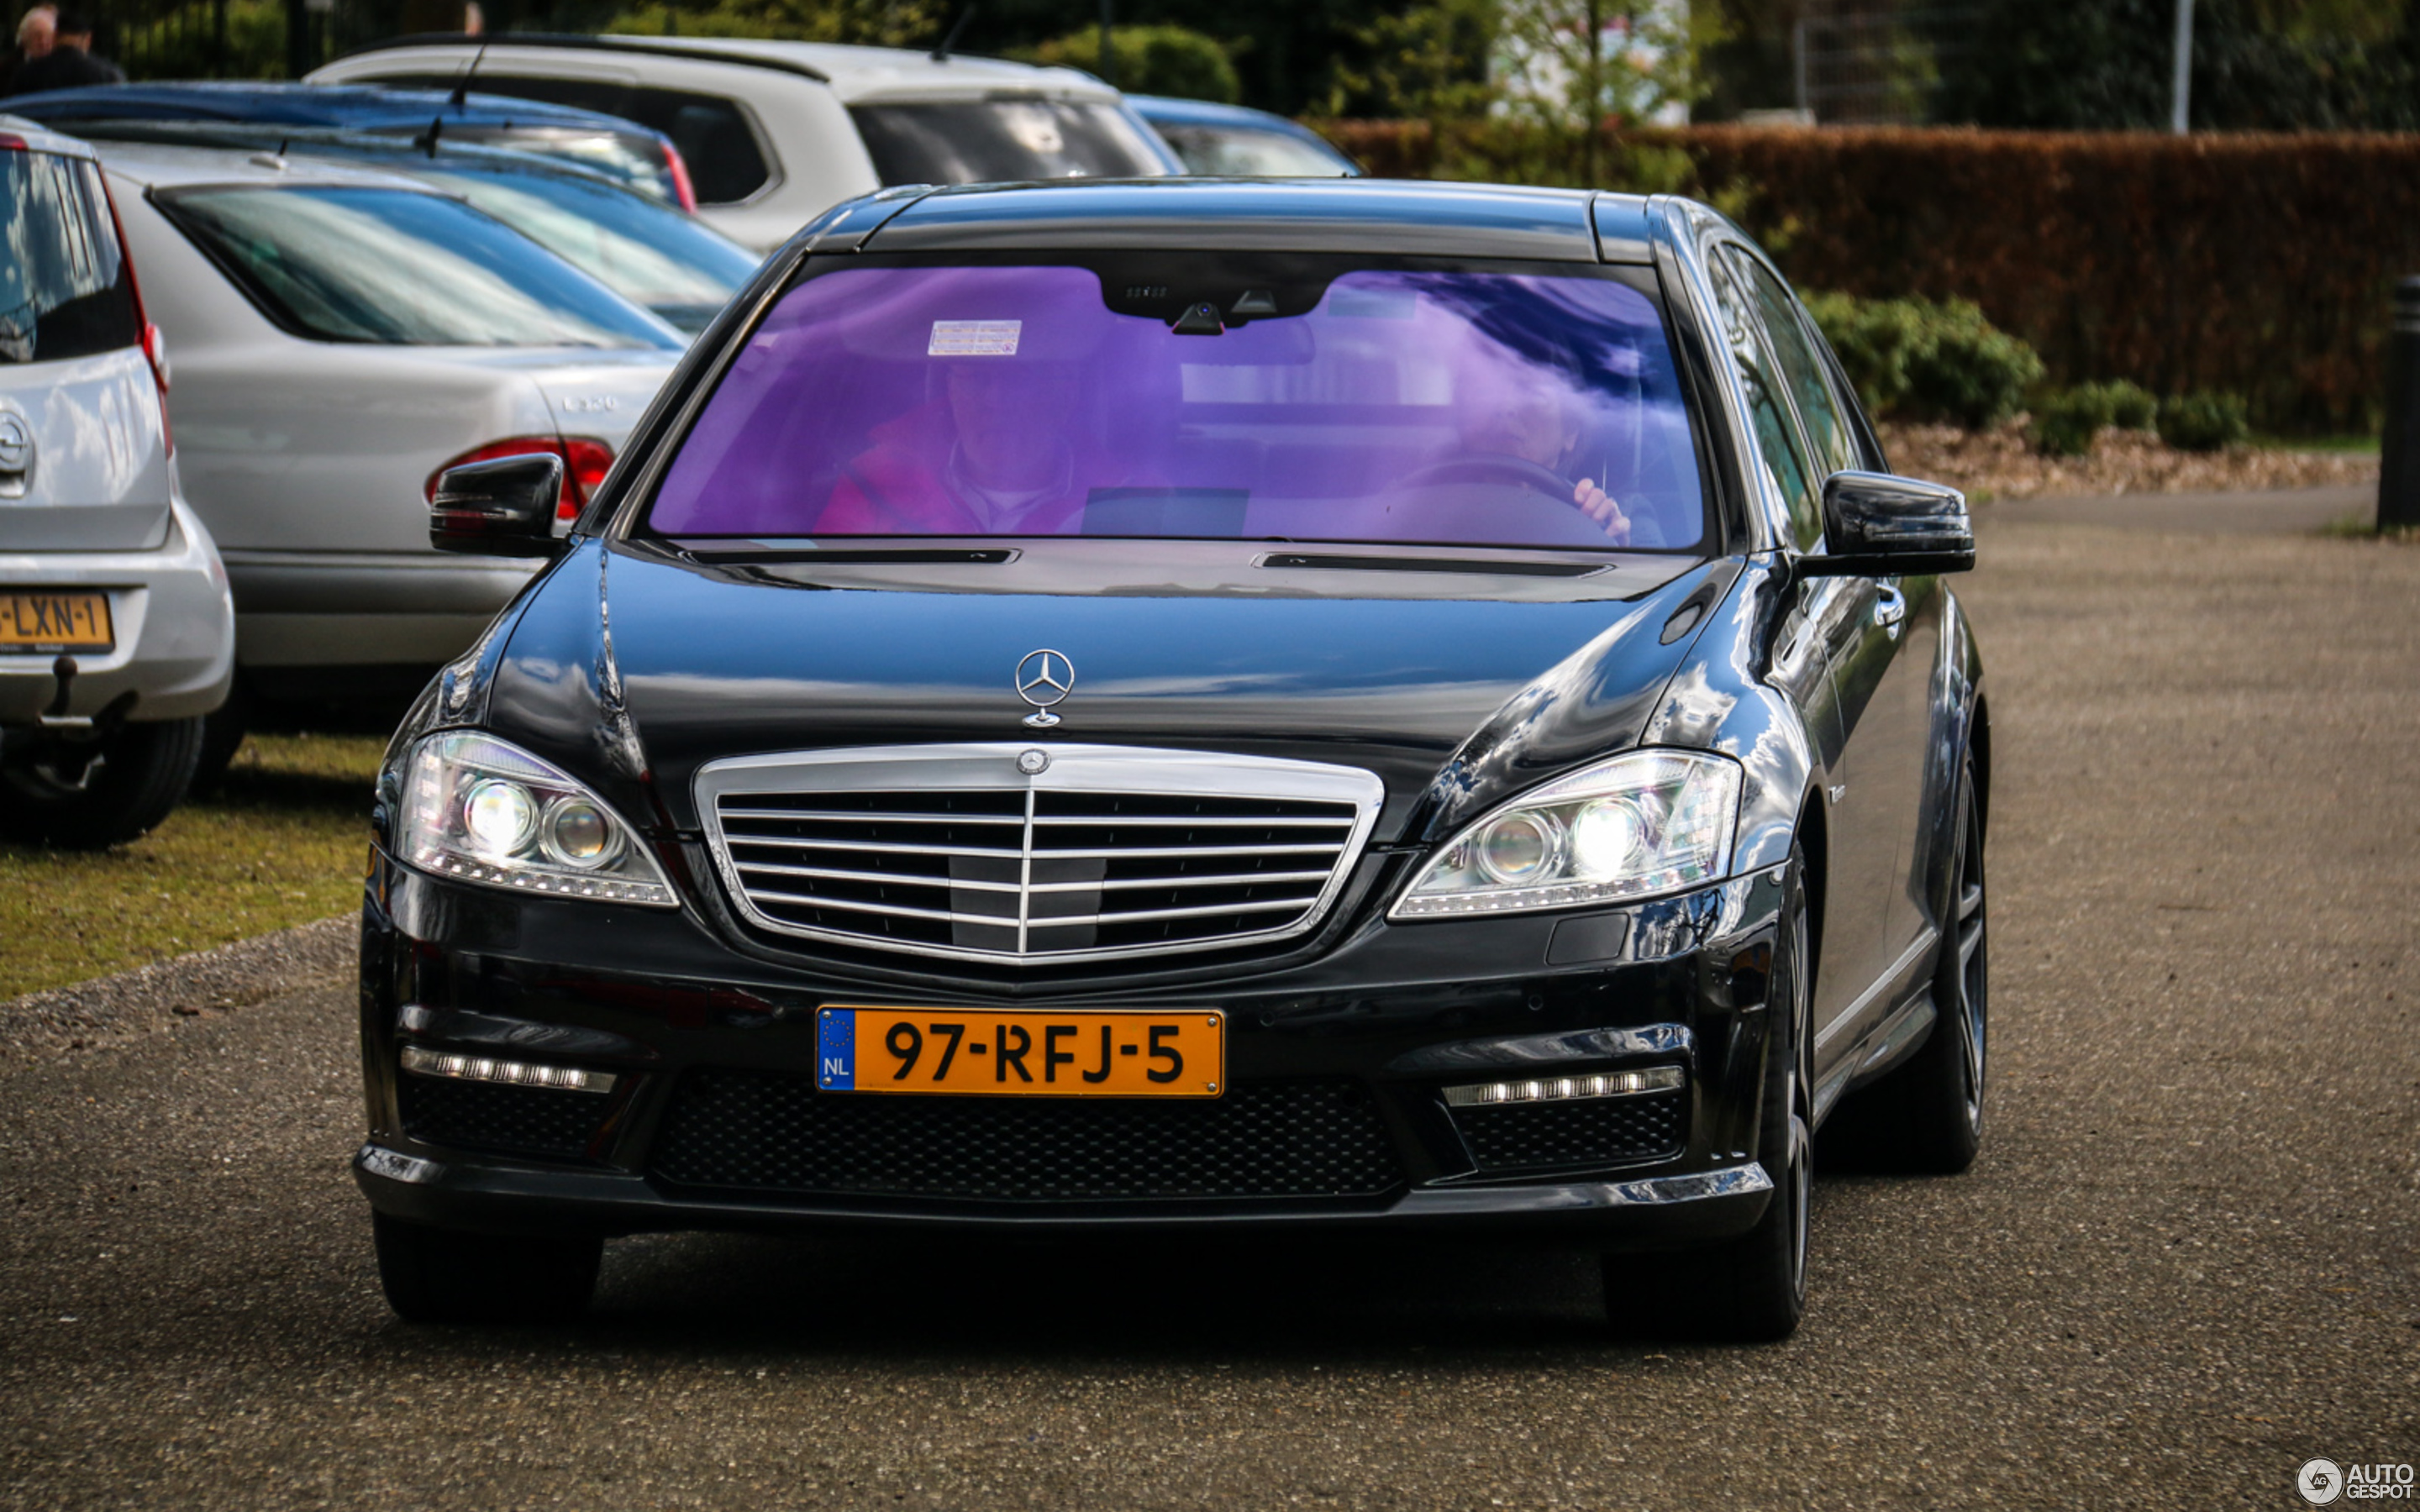 Mercedes Benz S 63 AMG W221 2011 17 April 2016 Autogespot